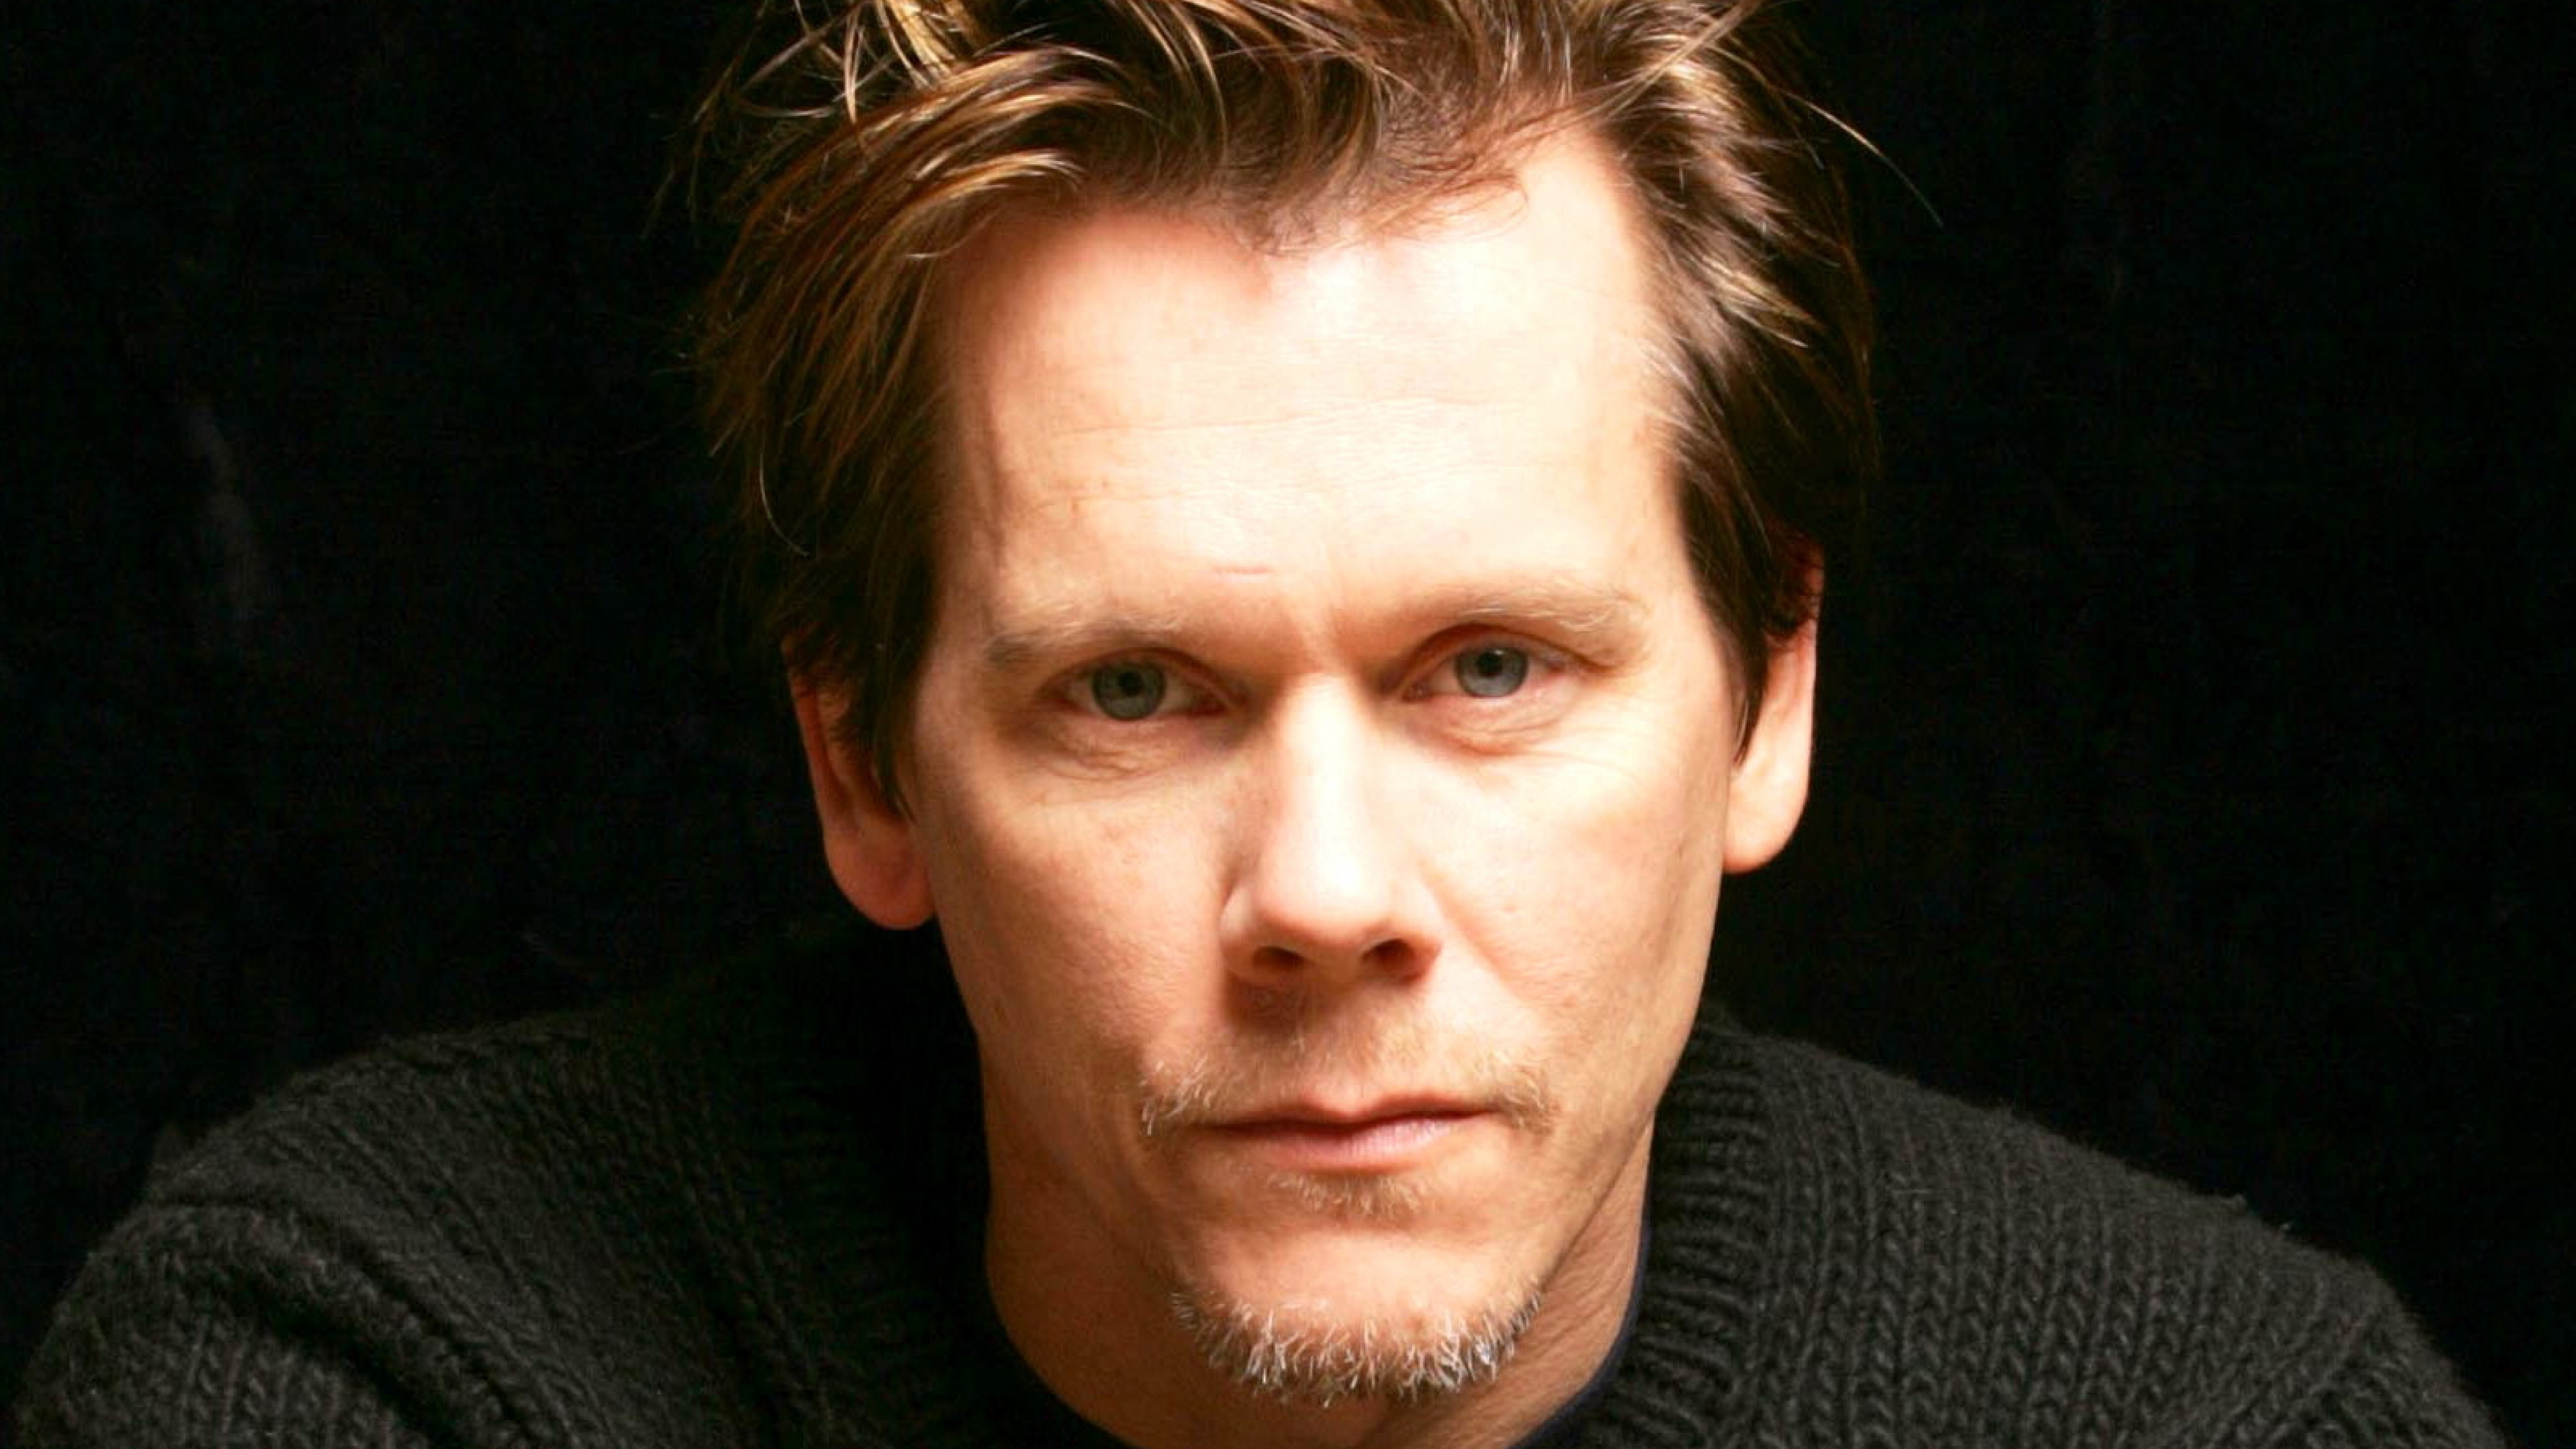 Download Wallpaper 3840x2160 Kevin bacon Man Eyes Hair 3840x2160